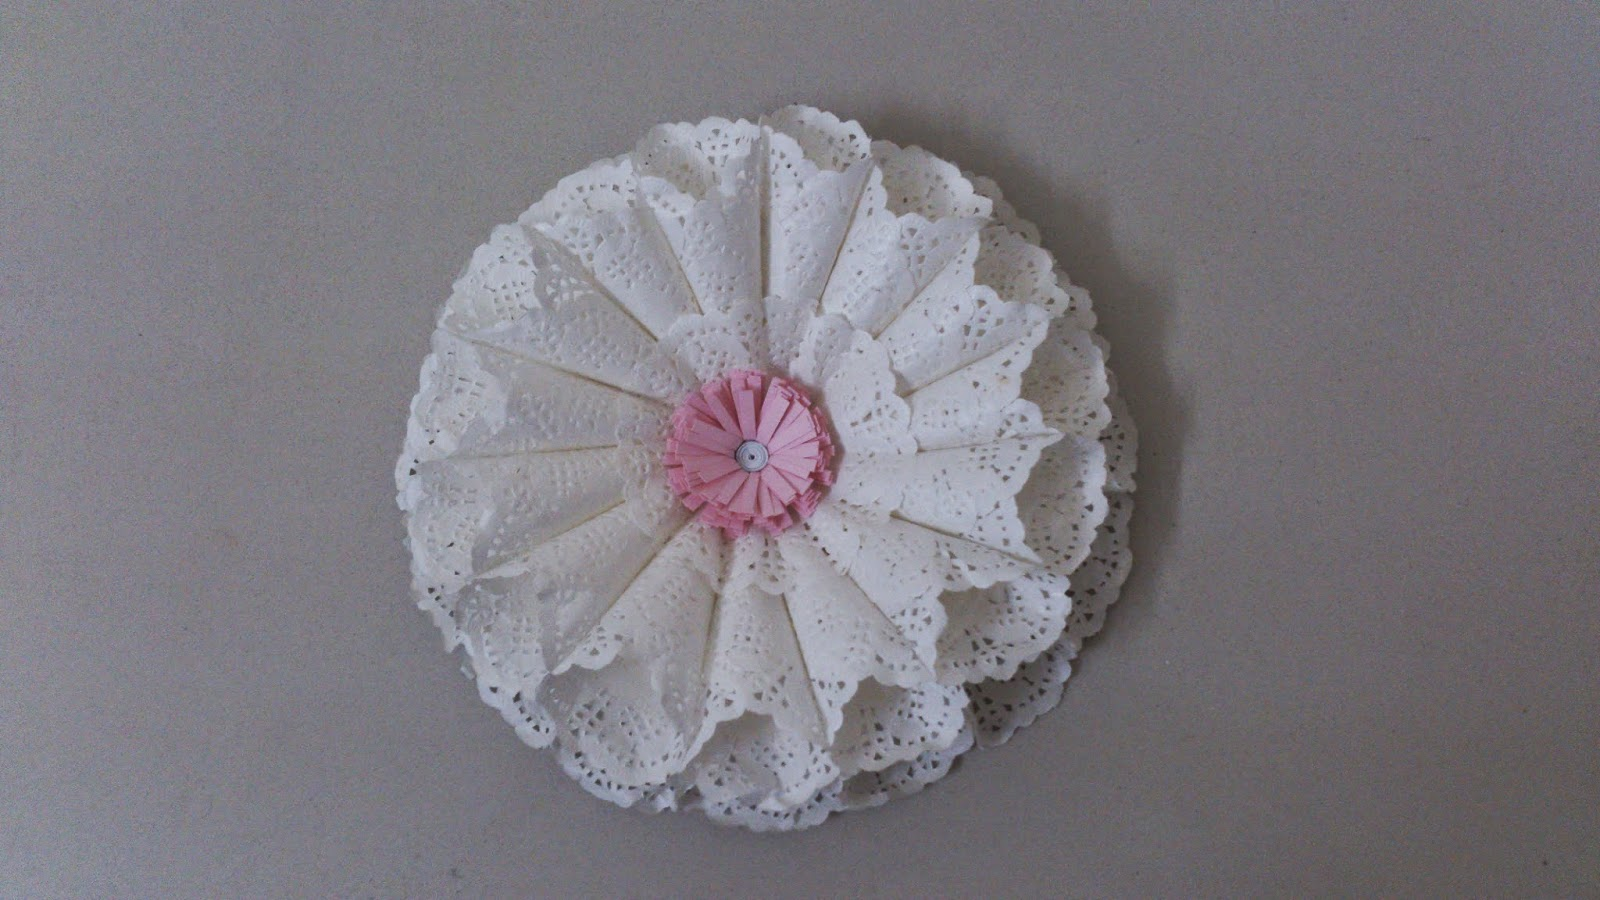 Handmade paper flower top view